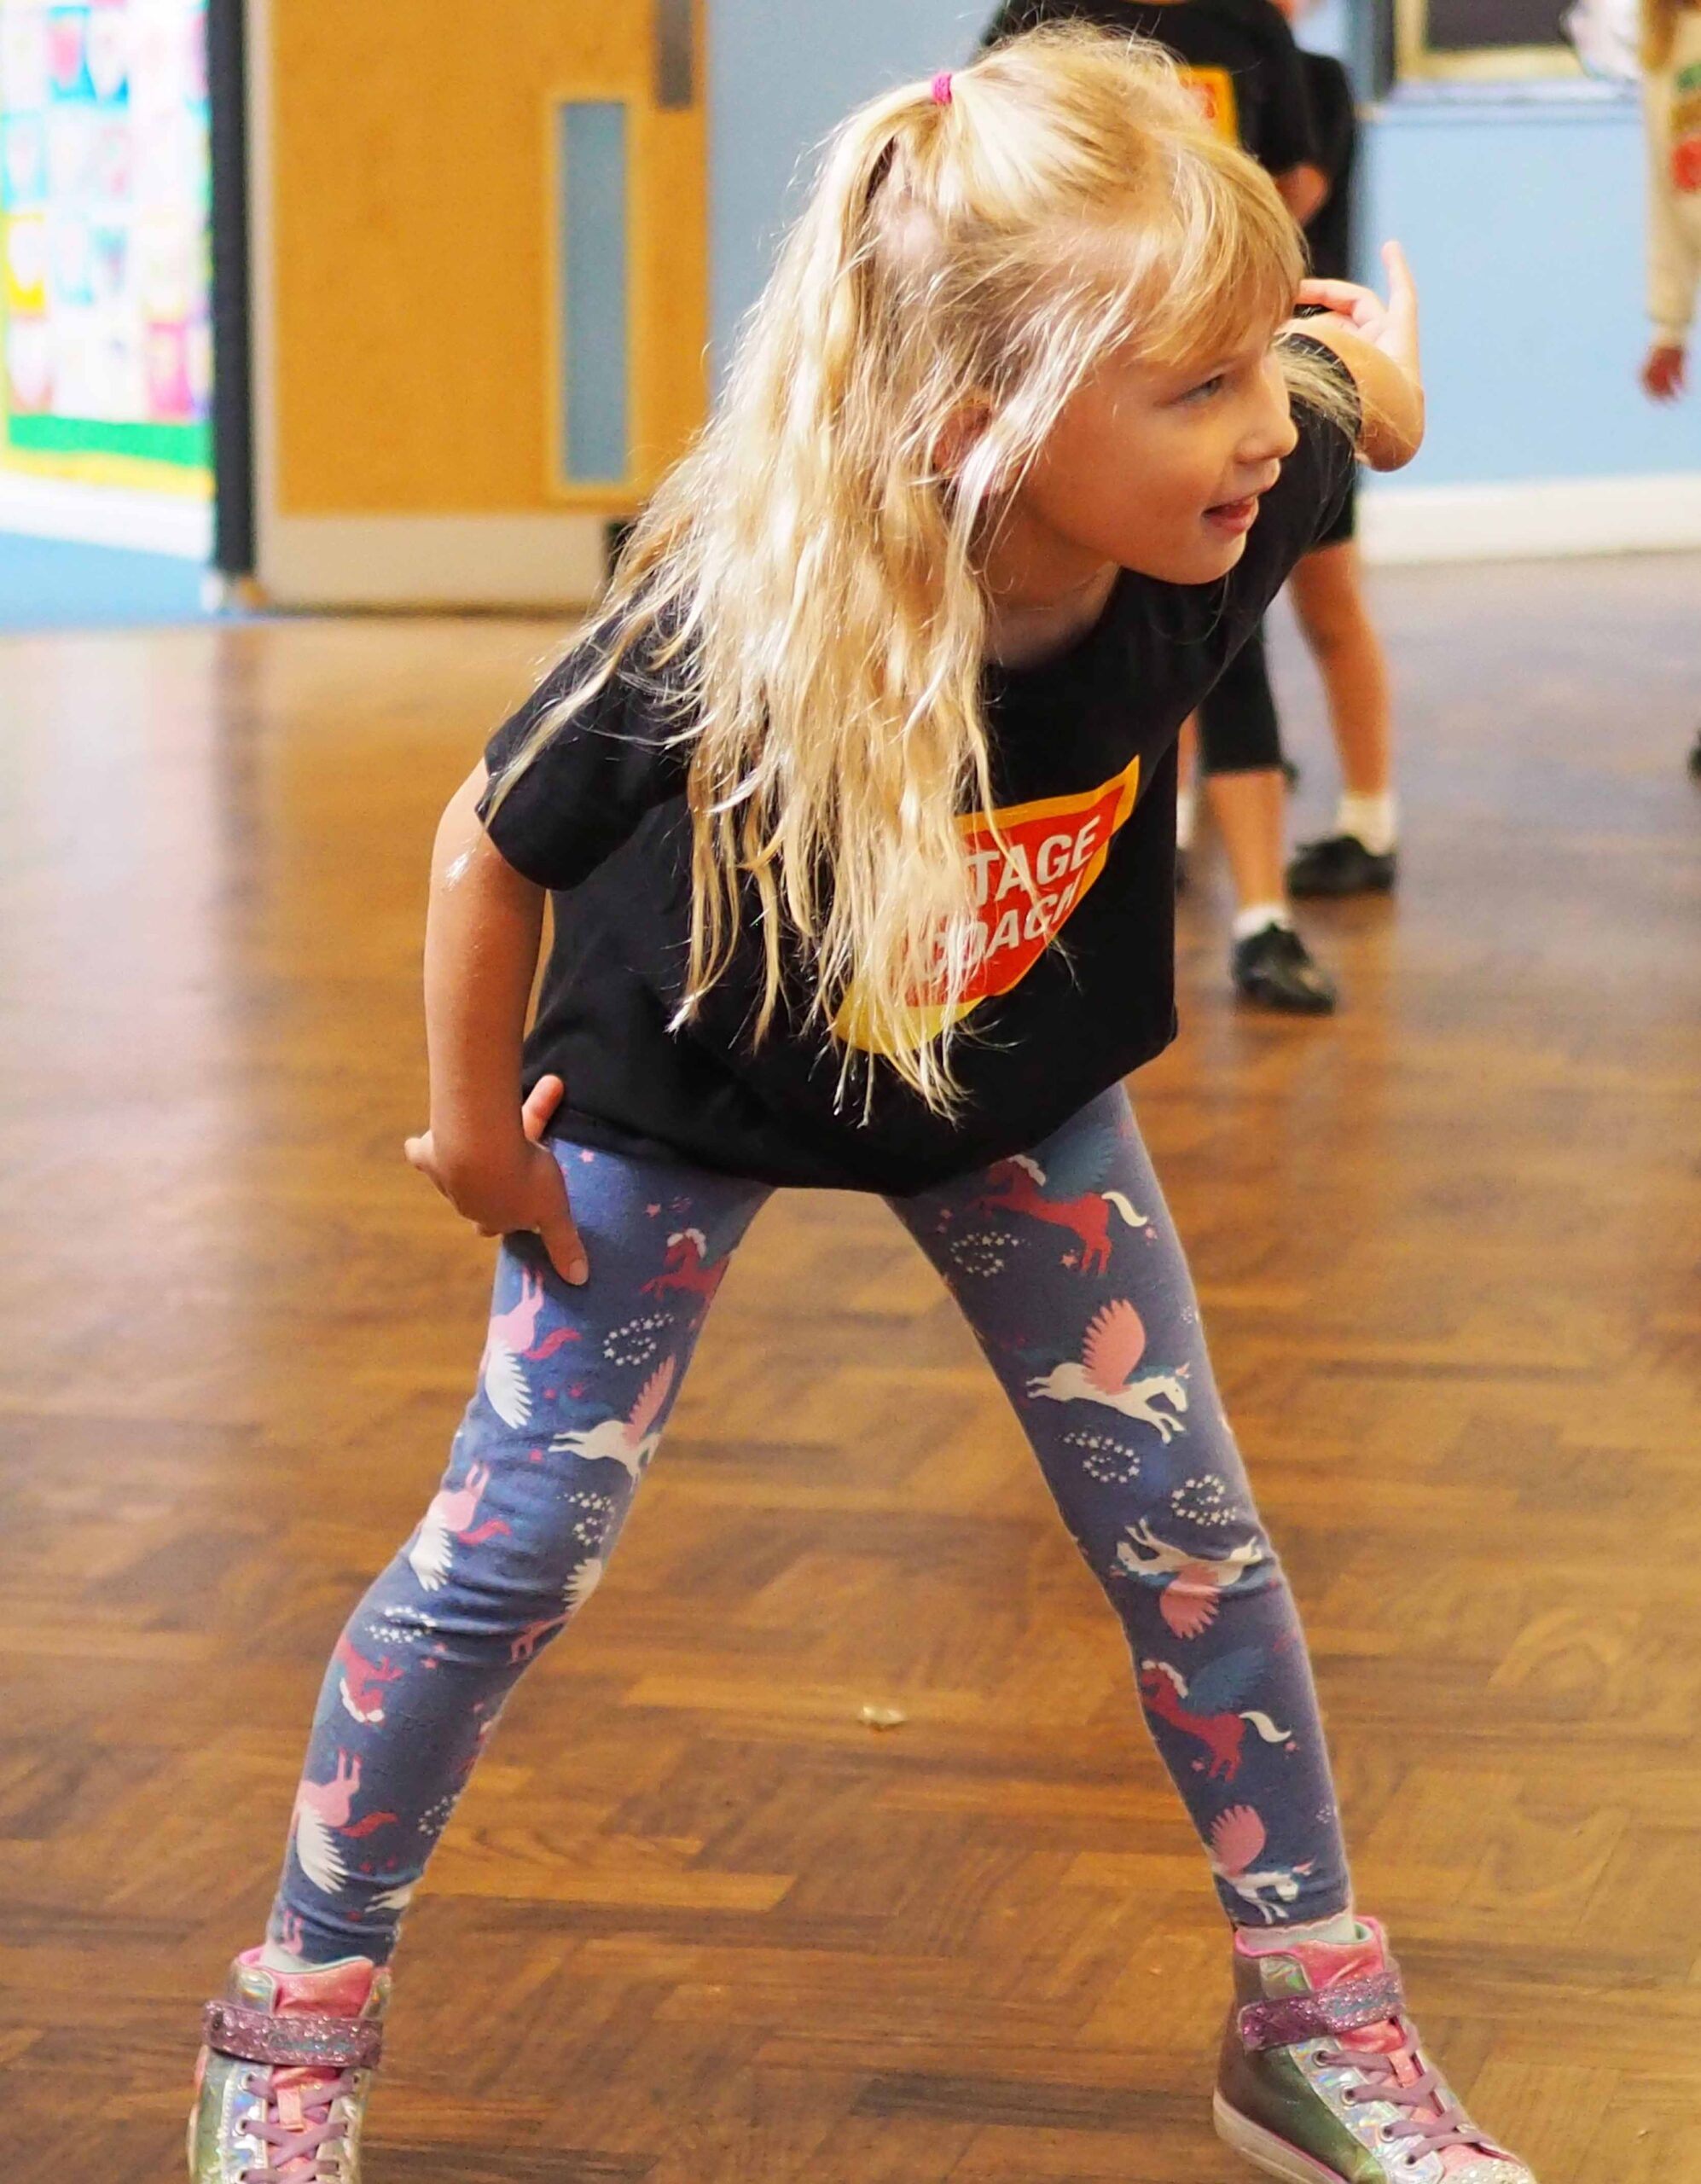 Stagecoach Performing Arts School Review – Laura's Lovely Blog ♥